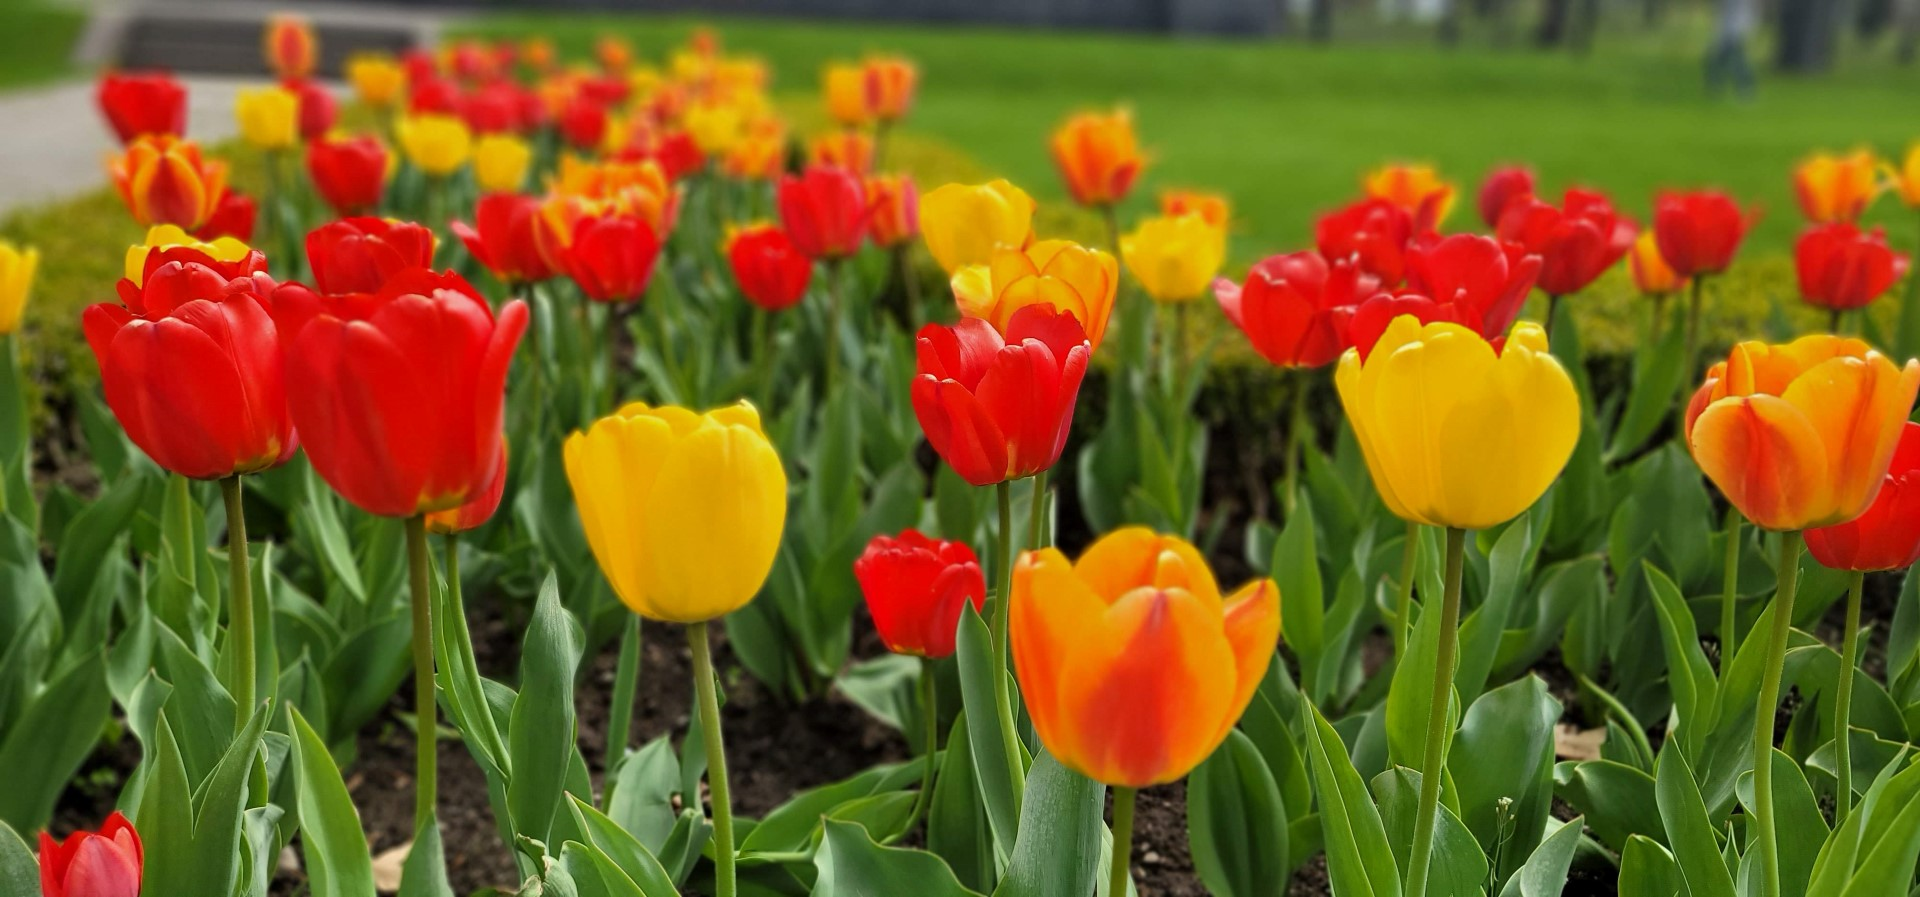 Tulips at Queenston Heights Niagara on the Lake